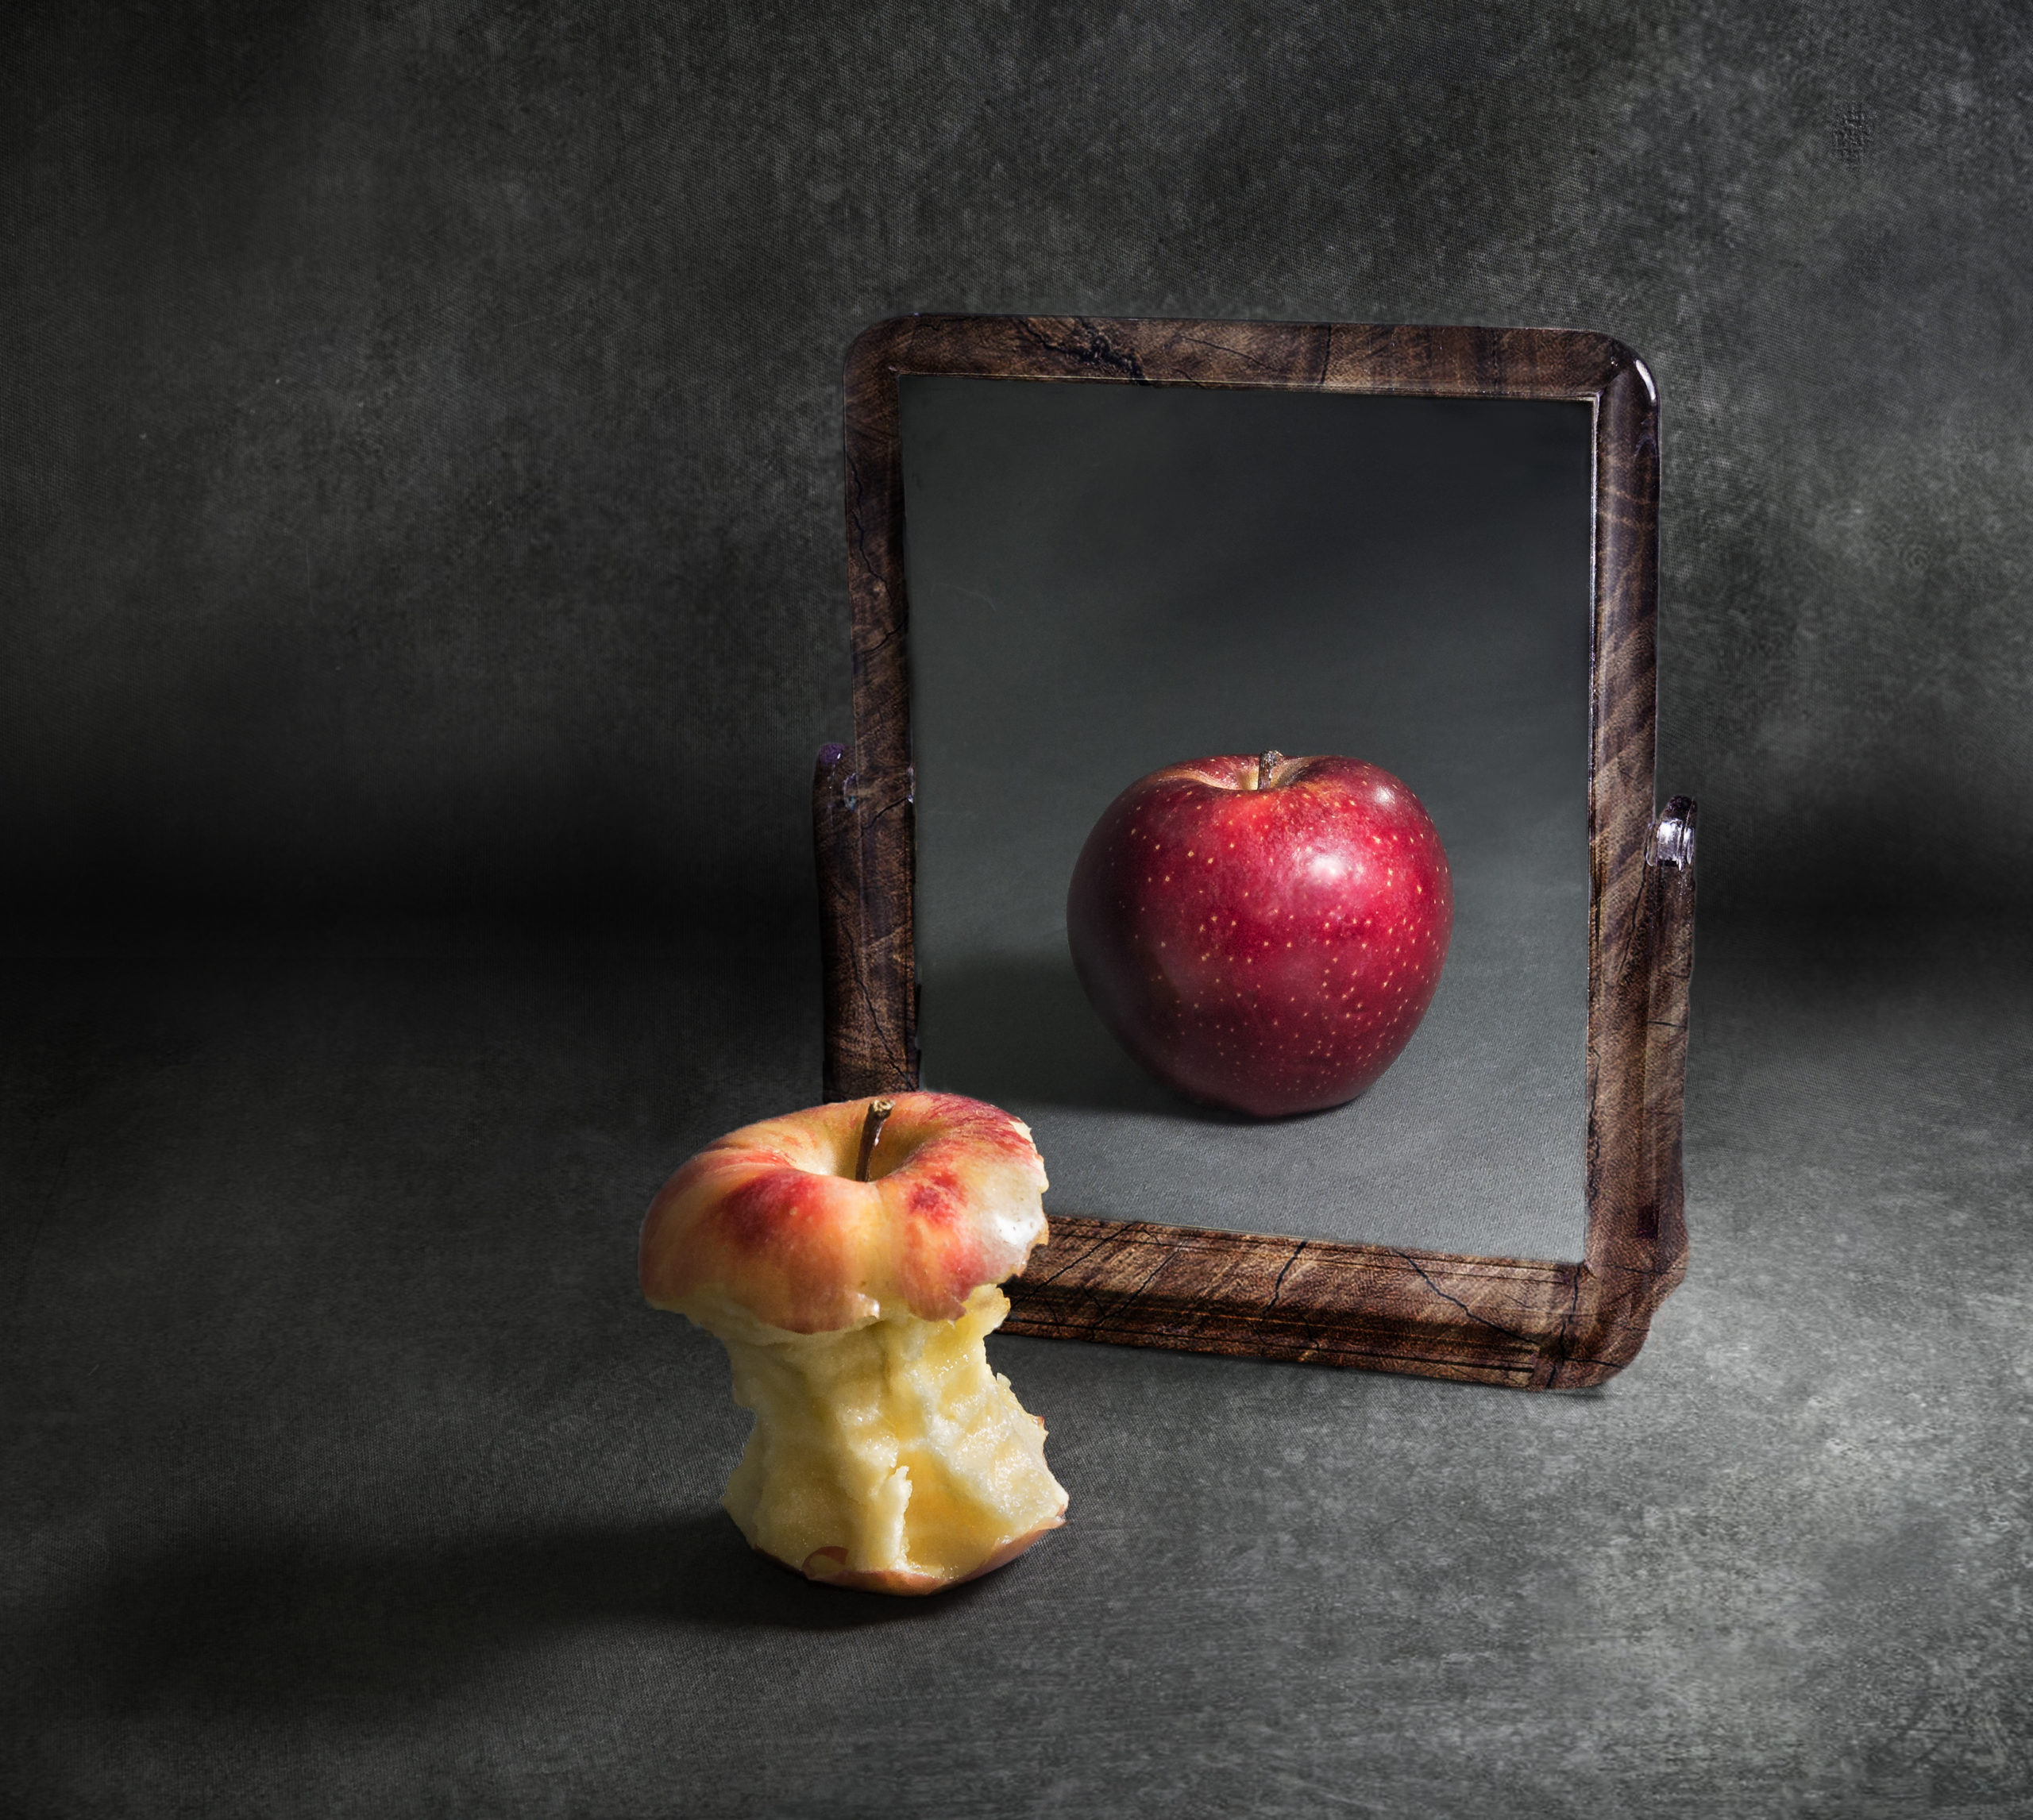 apple with anorexia looking at its reflection in a mirror With grey background